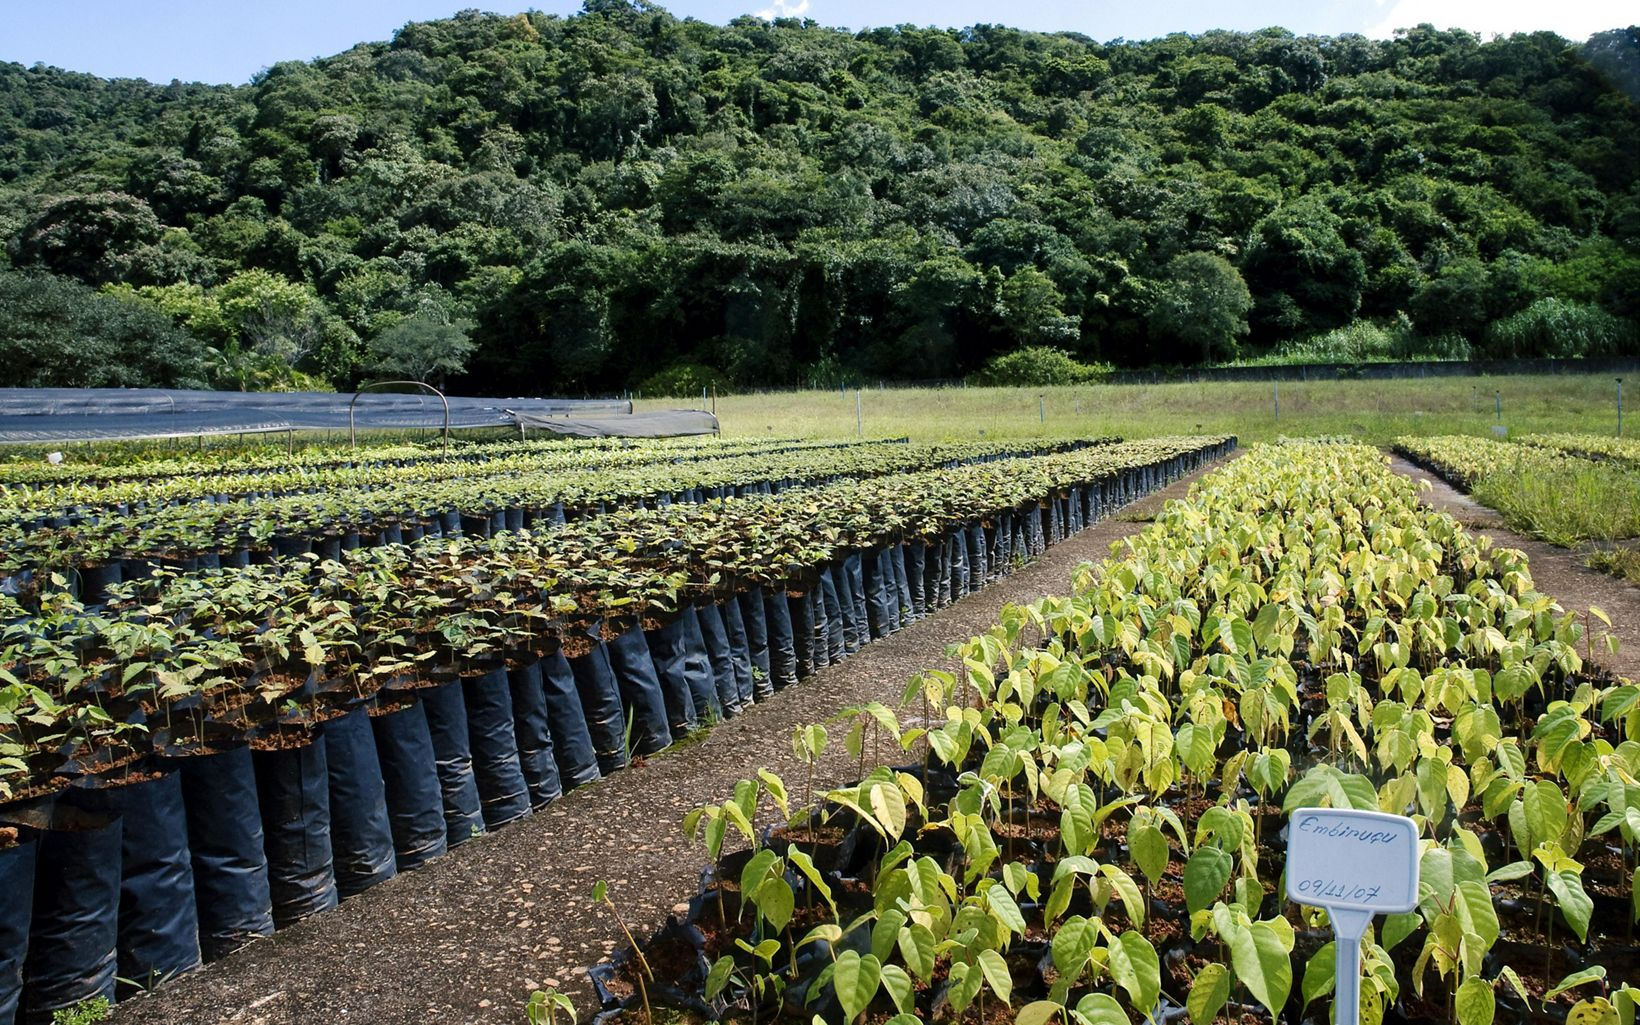 These tree seedlings will be planted in local reforestation efforts to restore degraded riparian areas in watersheds that supply water to the city of São Paulo.